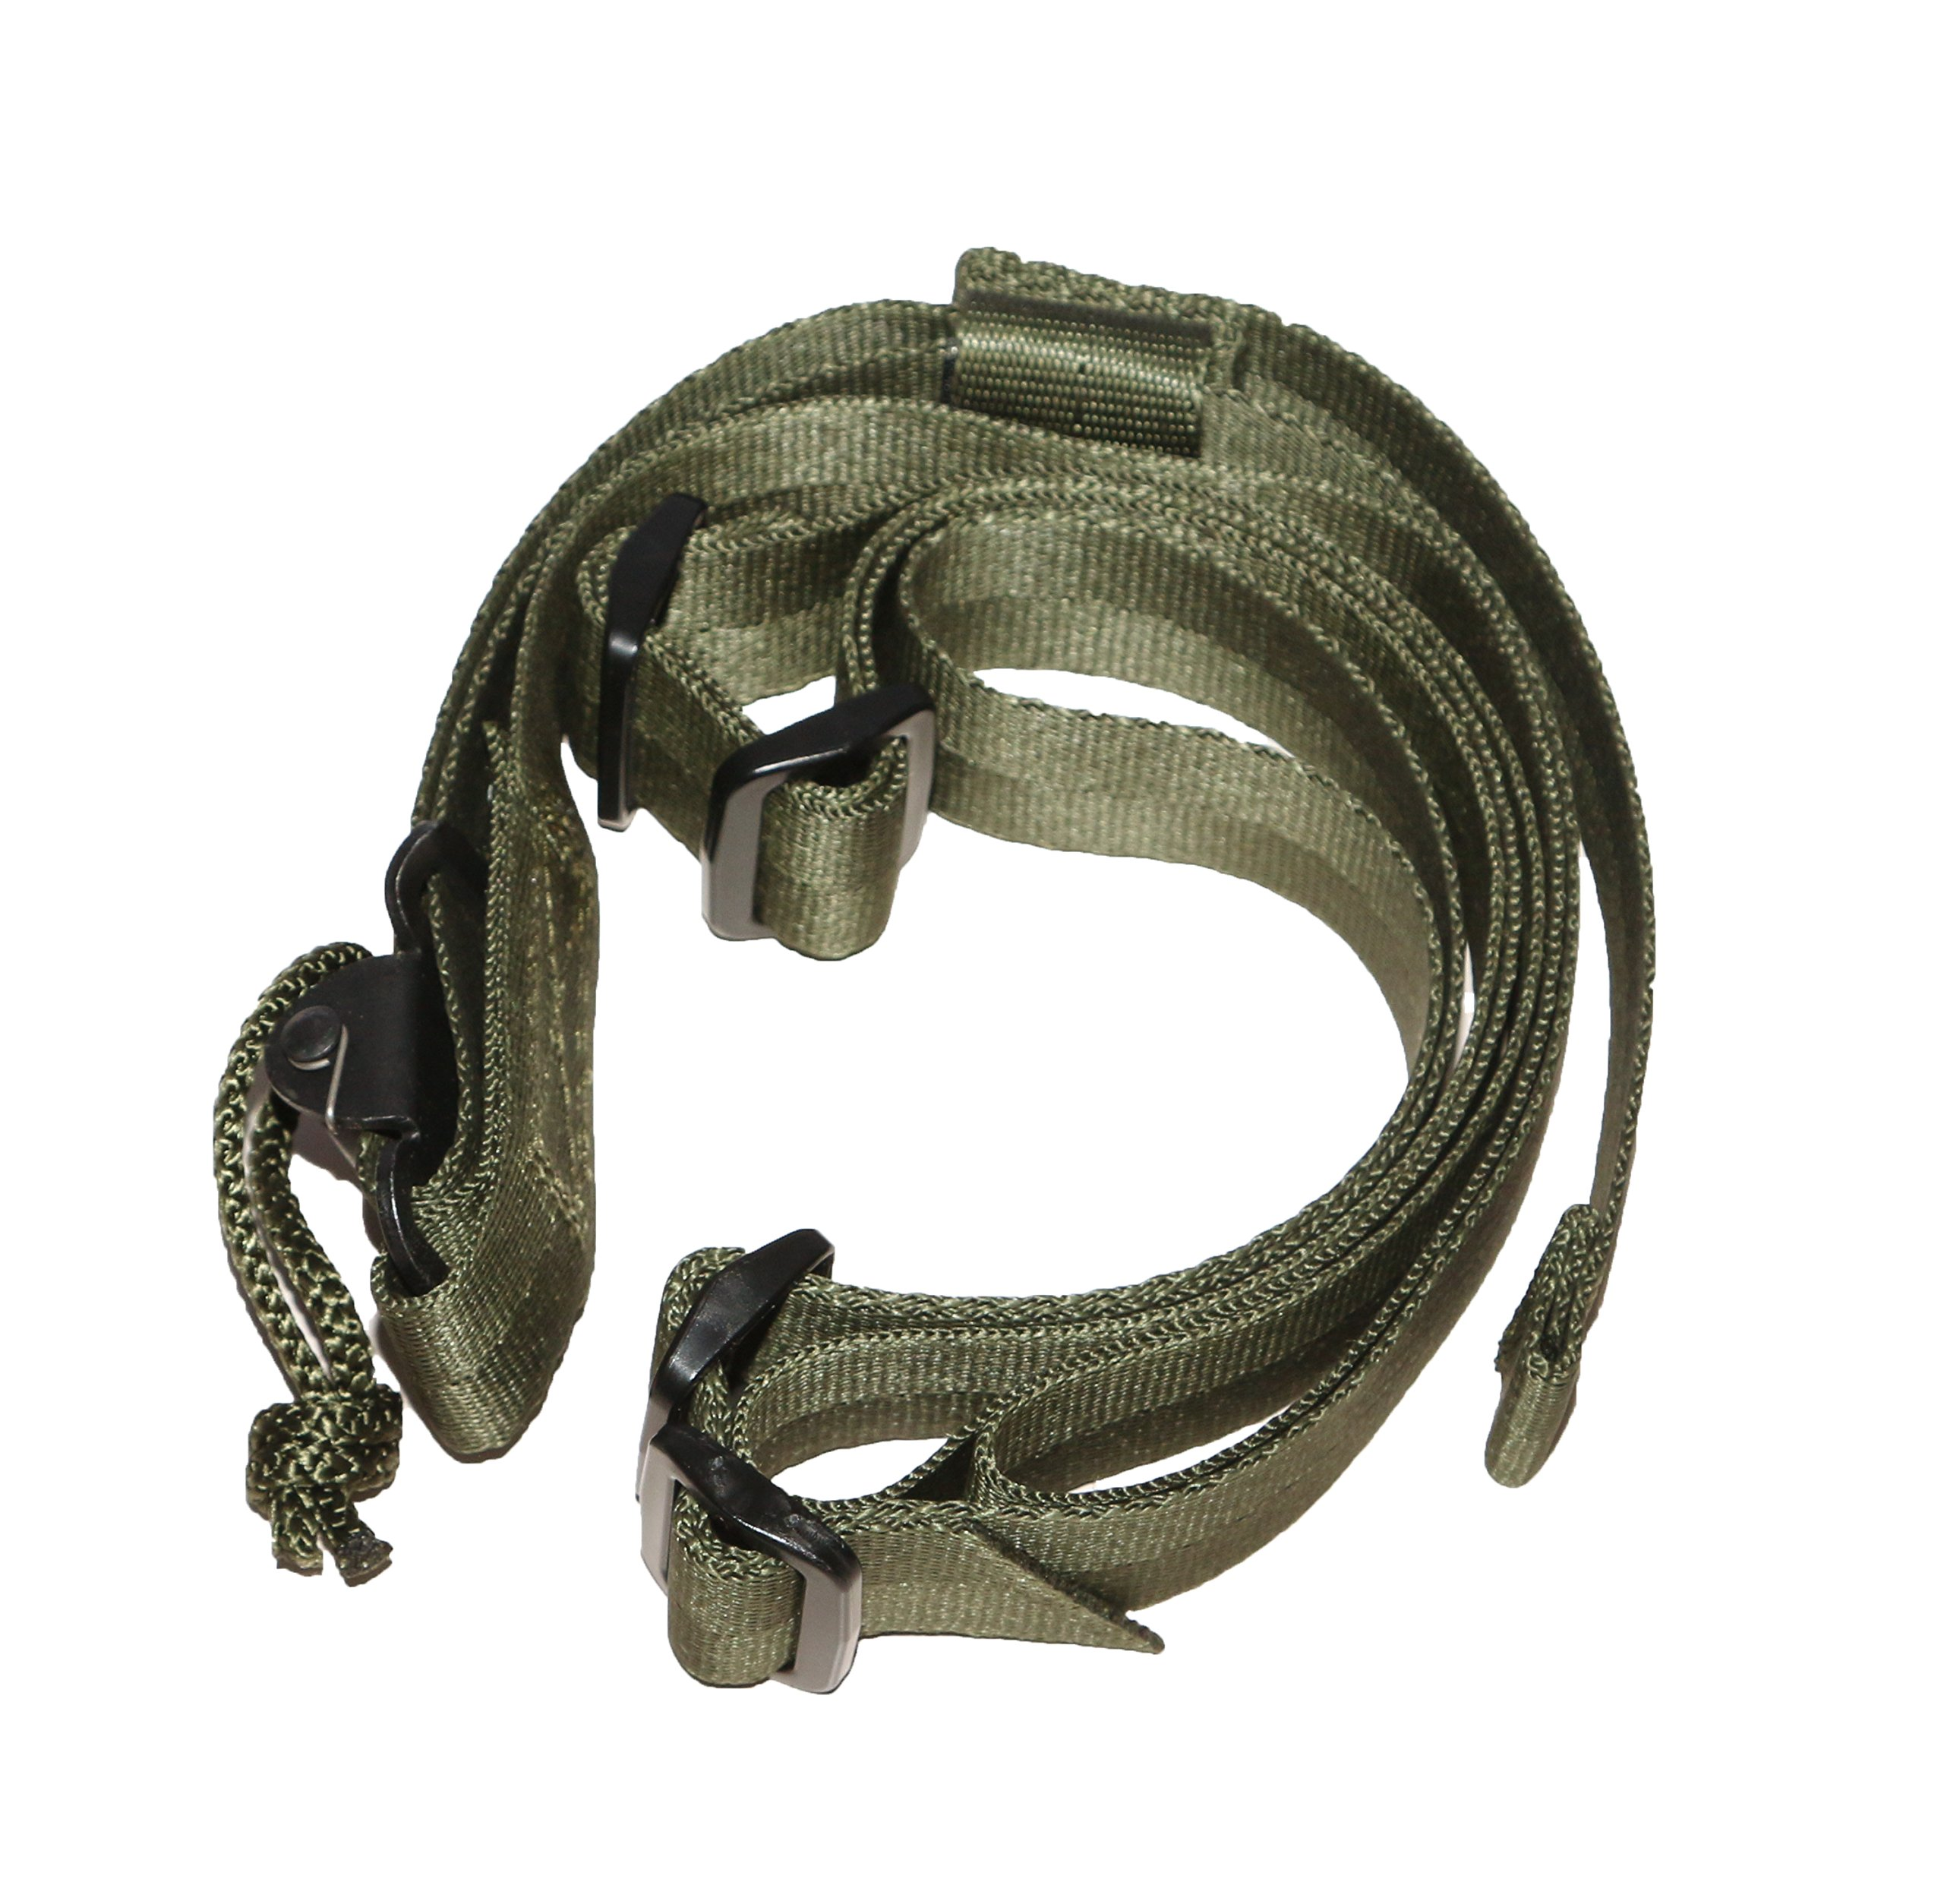 Viking Tactics VTAC Original 2 Point Sling (Olive Drab) by Viking Tactics